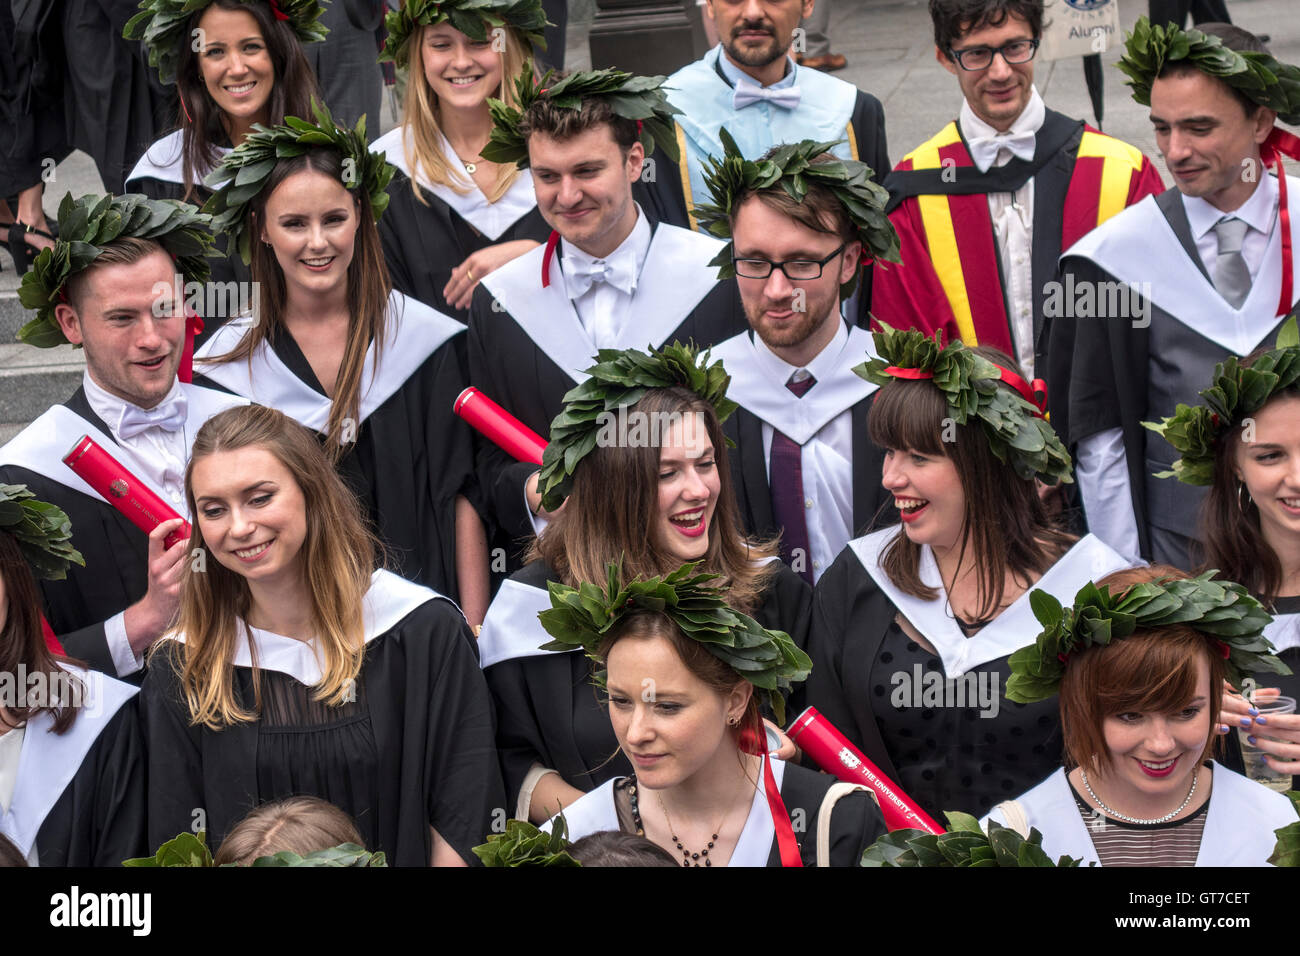 https://c7.alamy.com/comp/GT7CET/edinburgh-university-graduation-day-happy-graduating-students-wearing-GT7CET.jpg